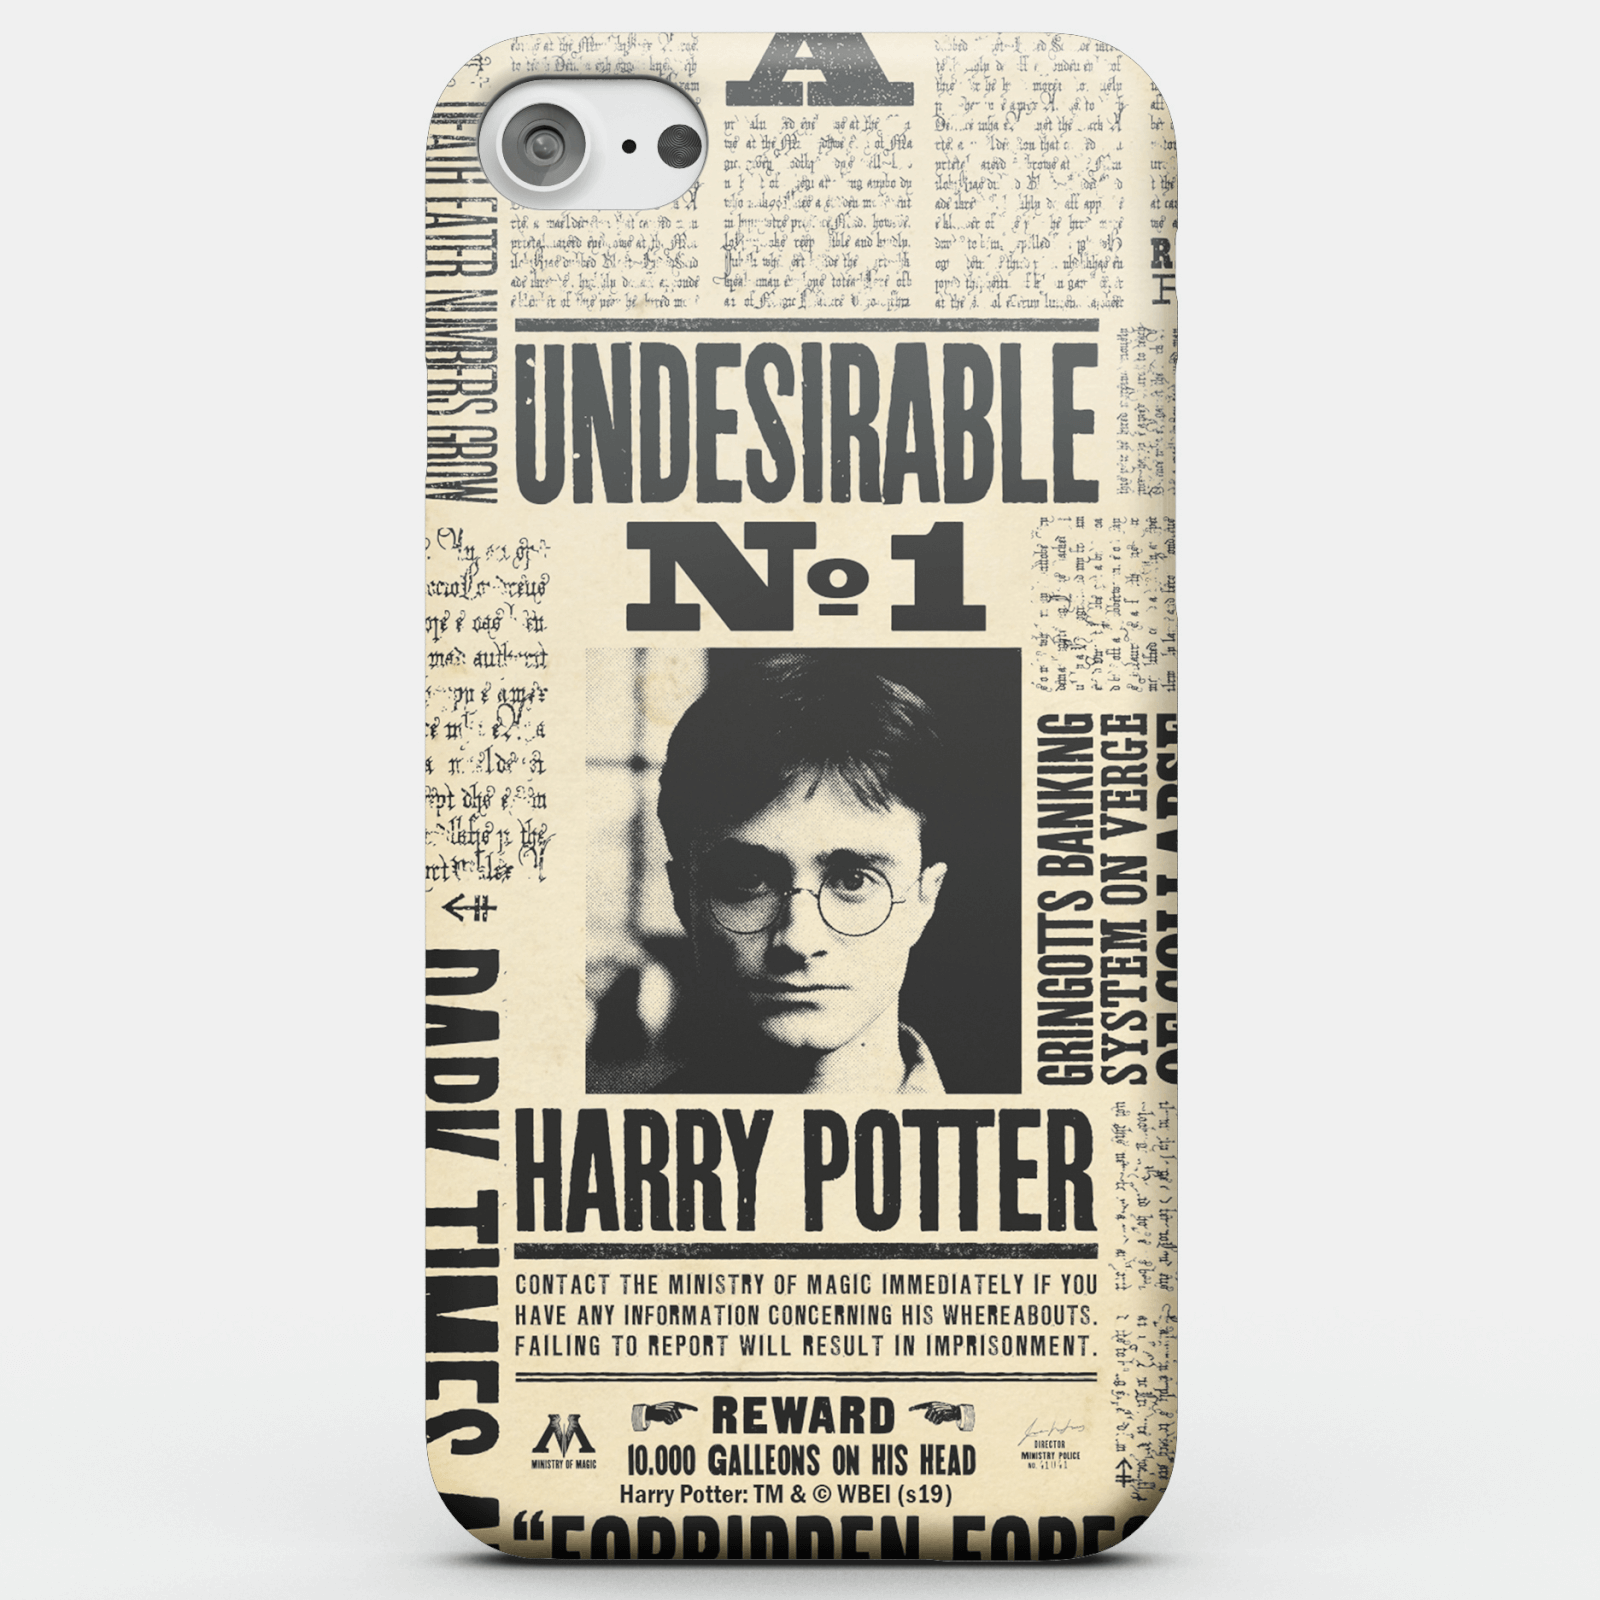 Harry Potter Phonecases Undesirable No. 1 Phone Case for iPhone and Android - iPhone 7 Plus - Carcasa rígida - Brillante de Harry Potter